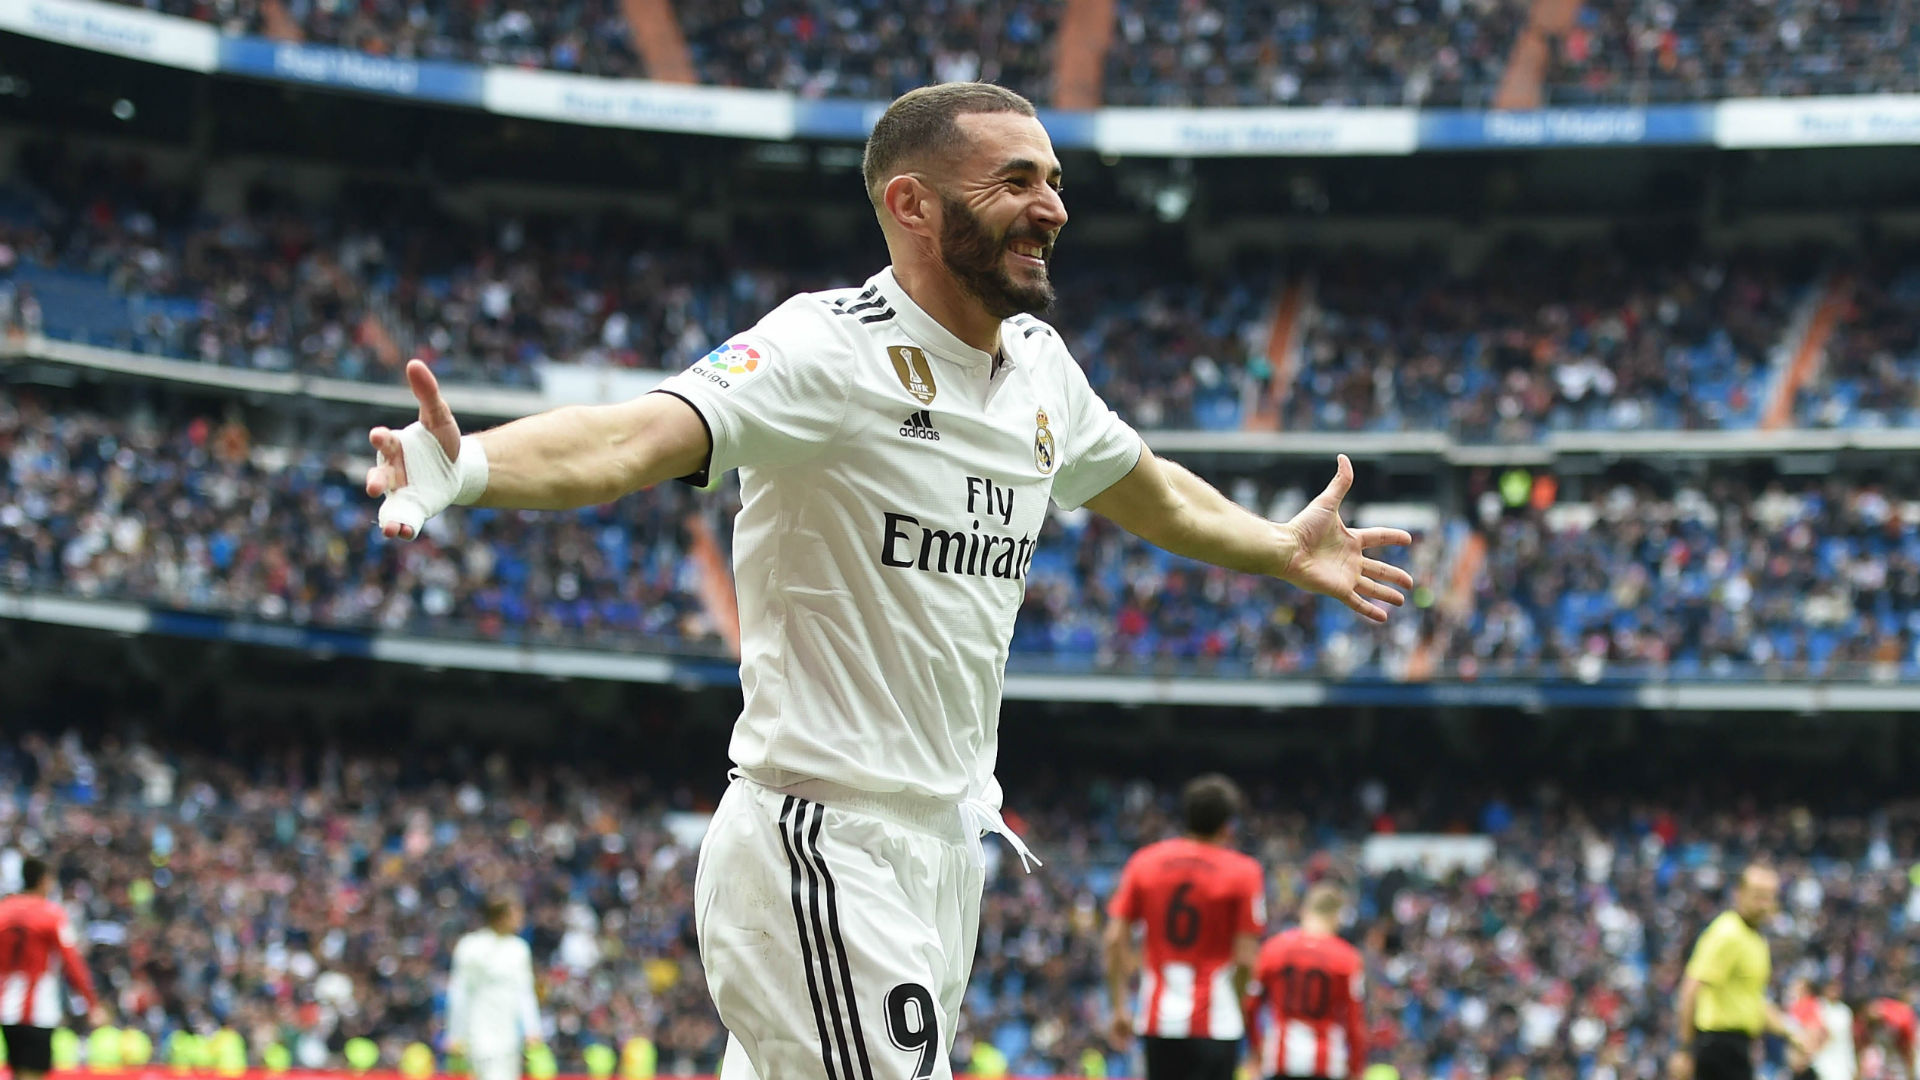 Real Madrid 3 Athletic Bilbao 0: Hat-trick hero Benzema scores for fifth game in a row to seal victory